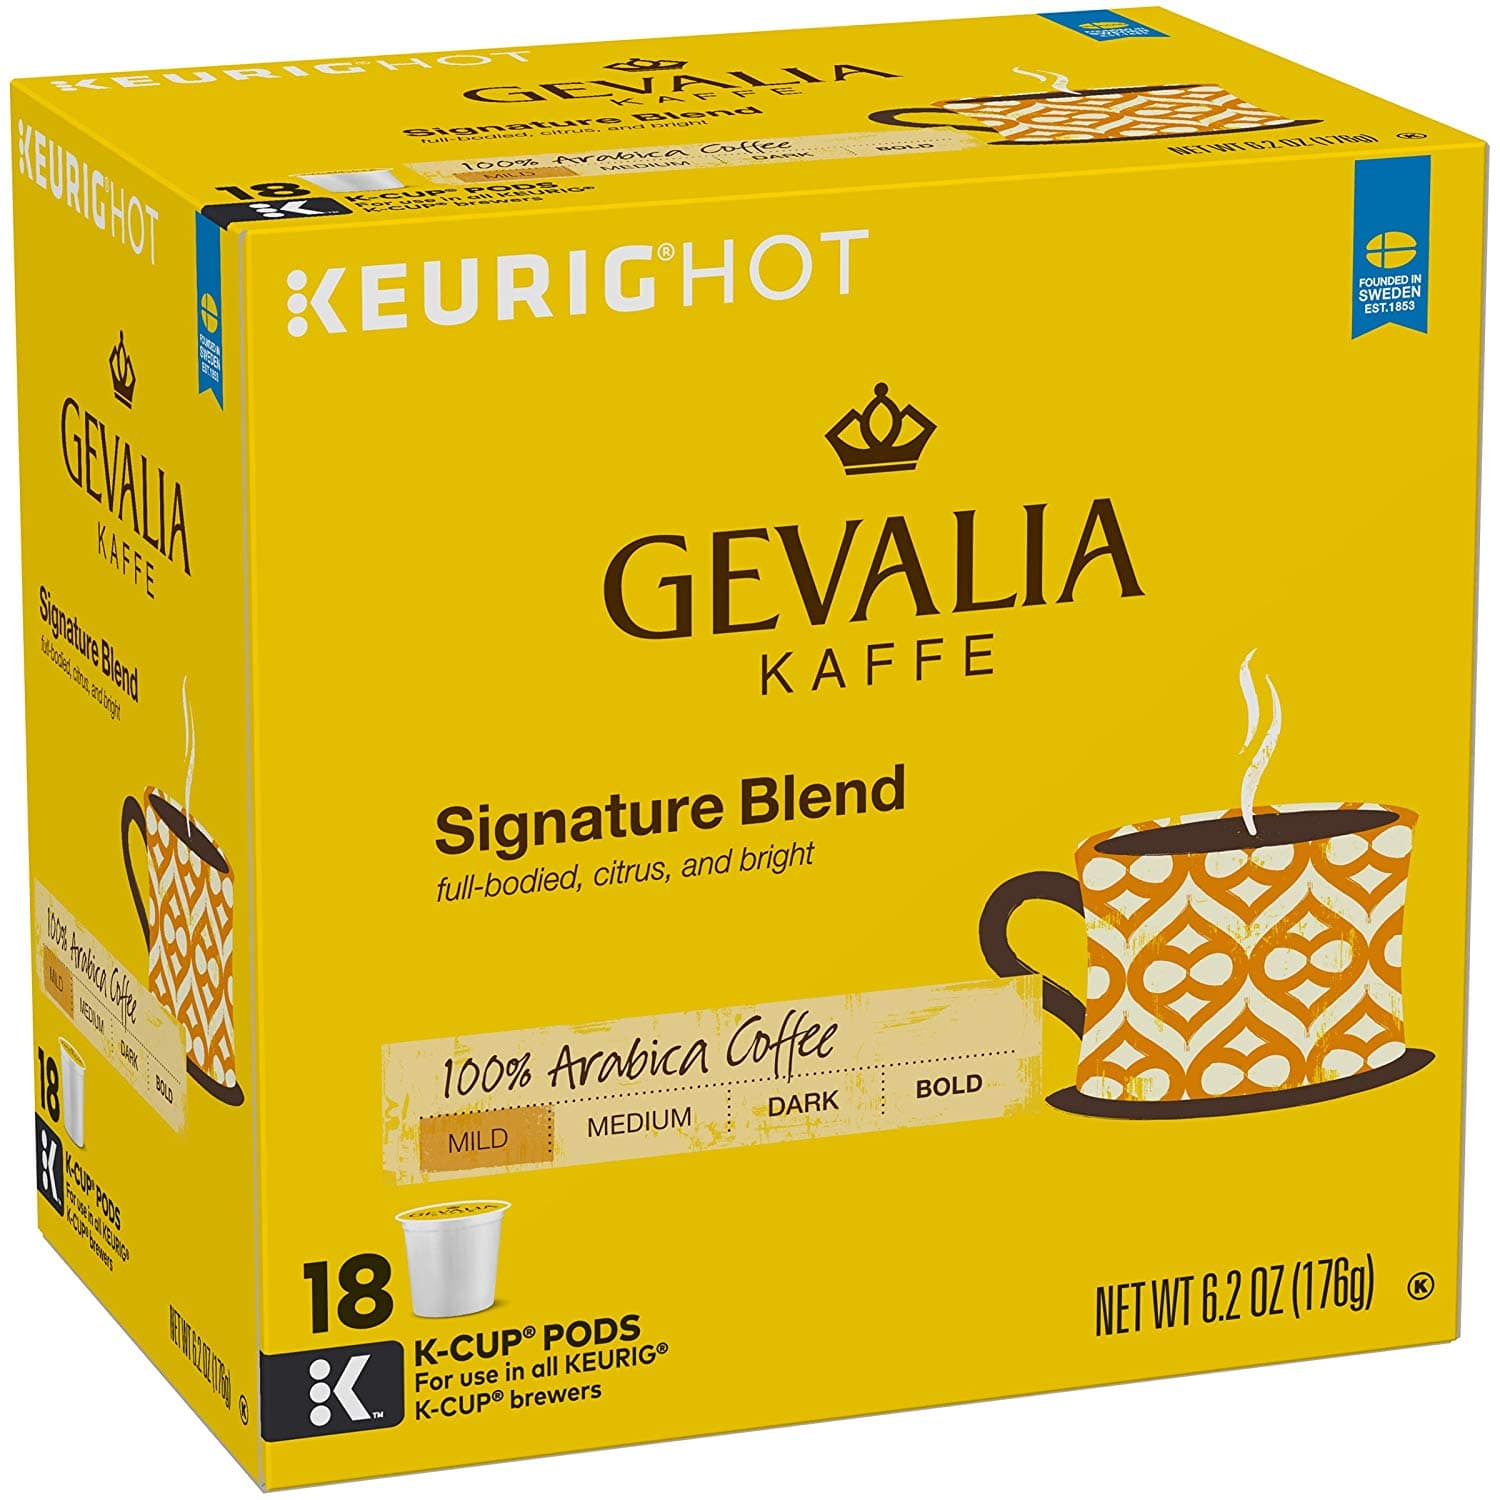 Gevalia Signature Blend Coffee, Mild Roast, K-Cup Pods, 18 Count - $5.78 or less with subscribe and save at Amazon